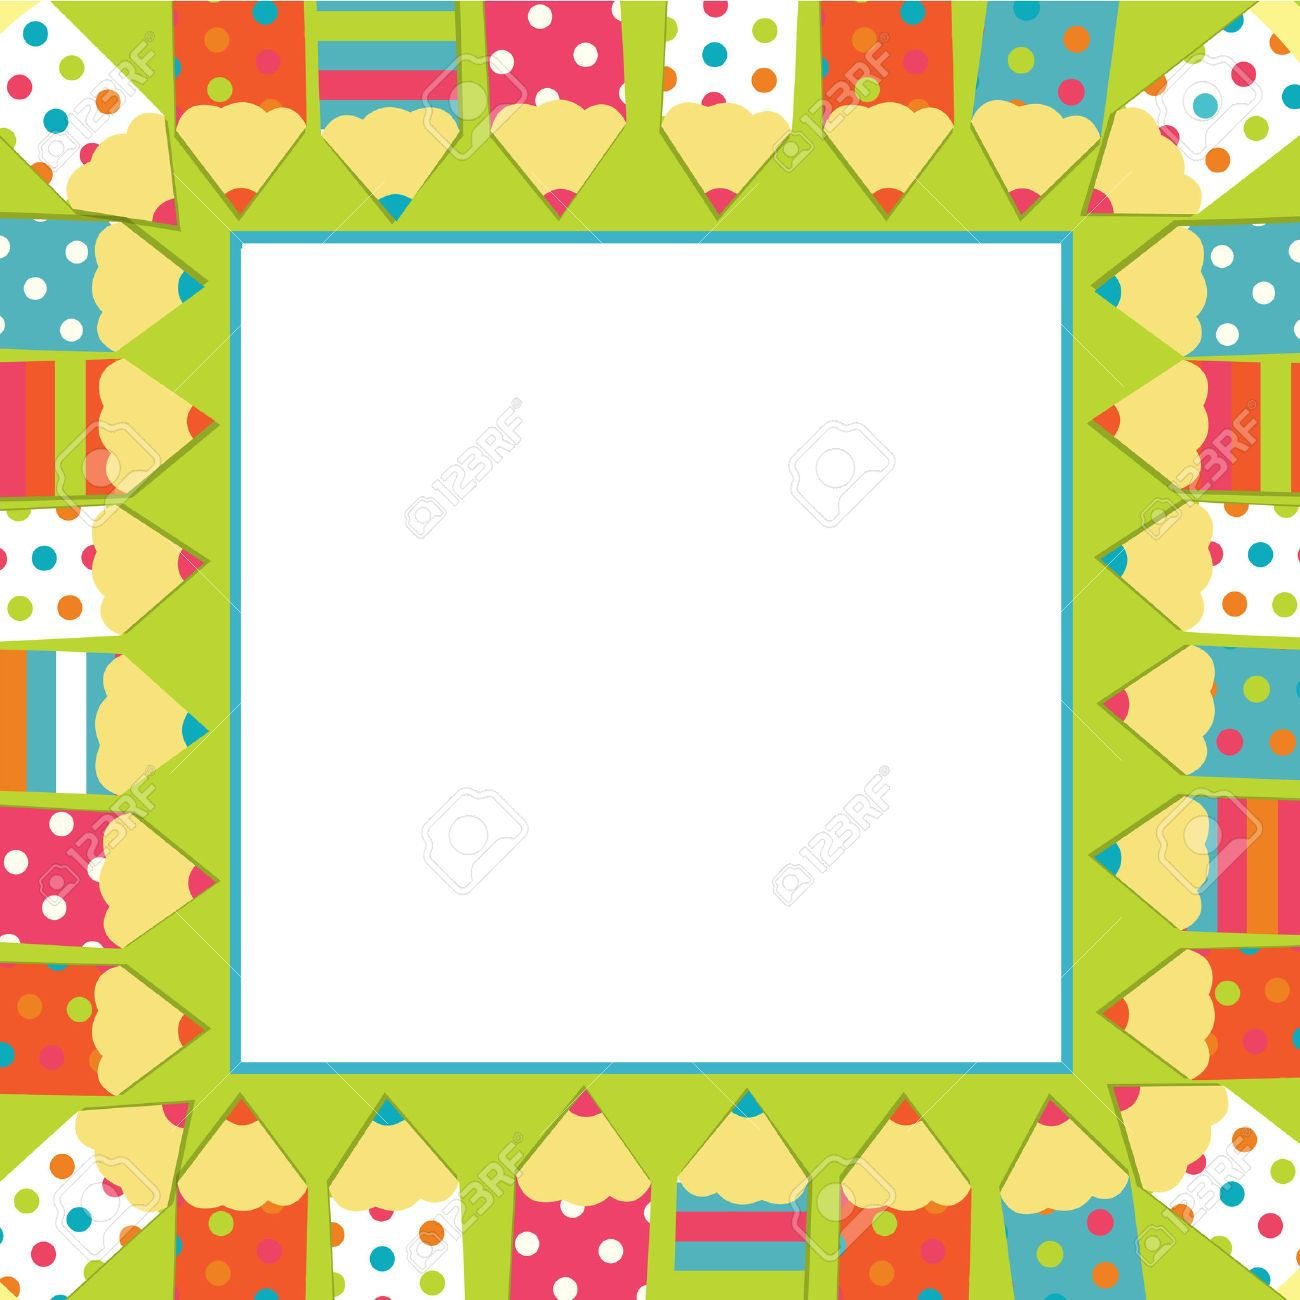 cute frame illustrations - Google Search | FRAMES/BORDERS ...